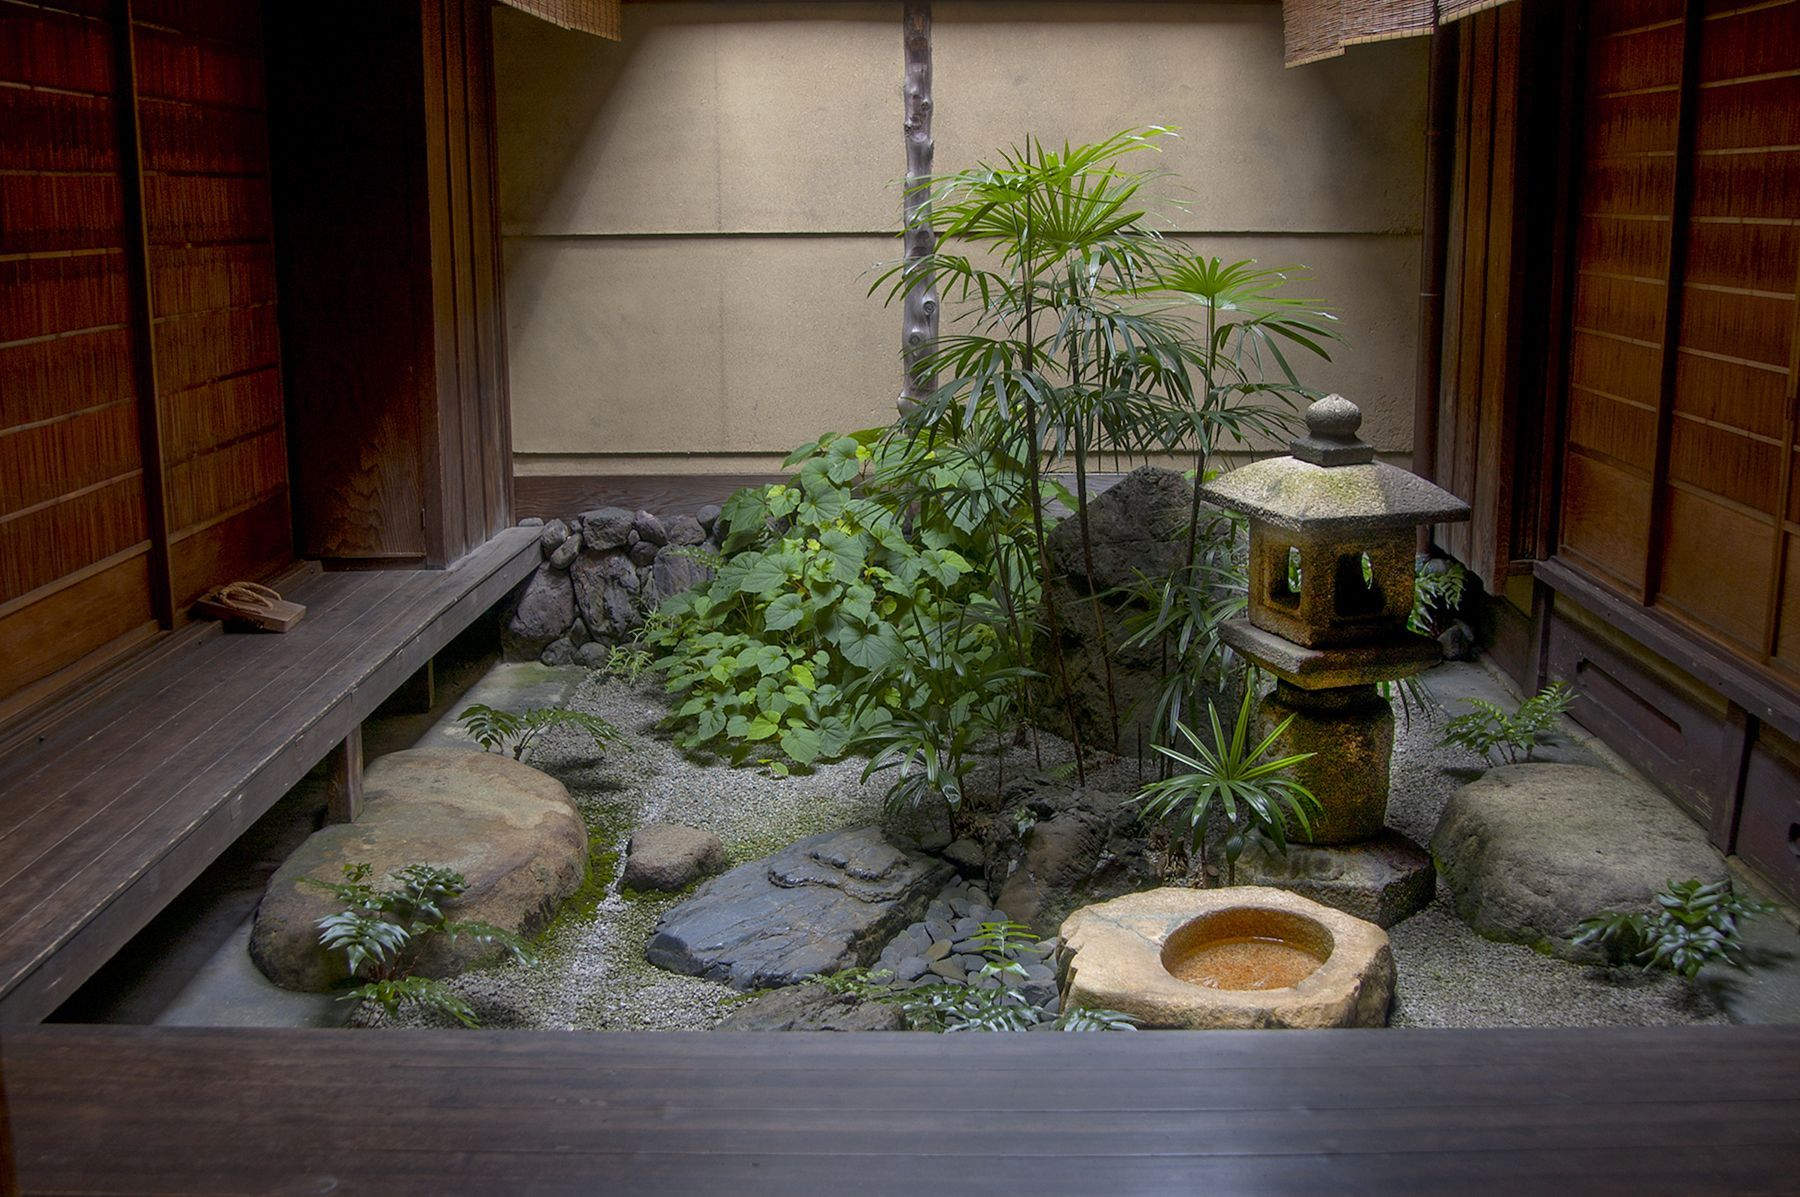 12 Wonderful Indoor Rock Garden Ideas That Can Enhance Your Home Style Dexorate Small Japanese Garden Zen Garden Design Japanese Garden